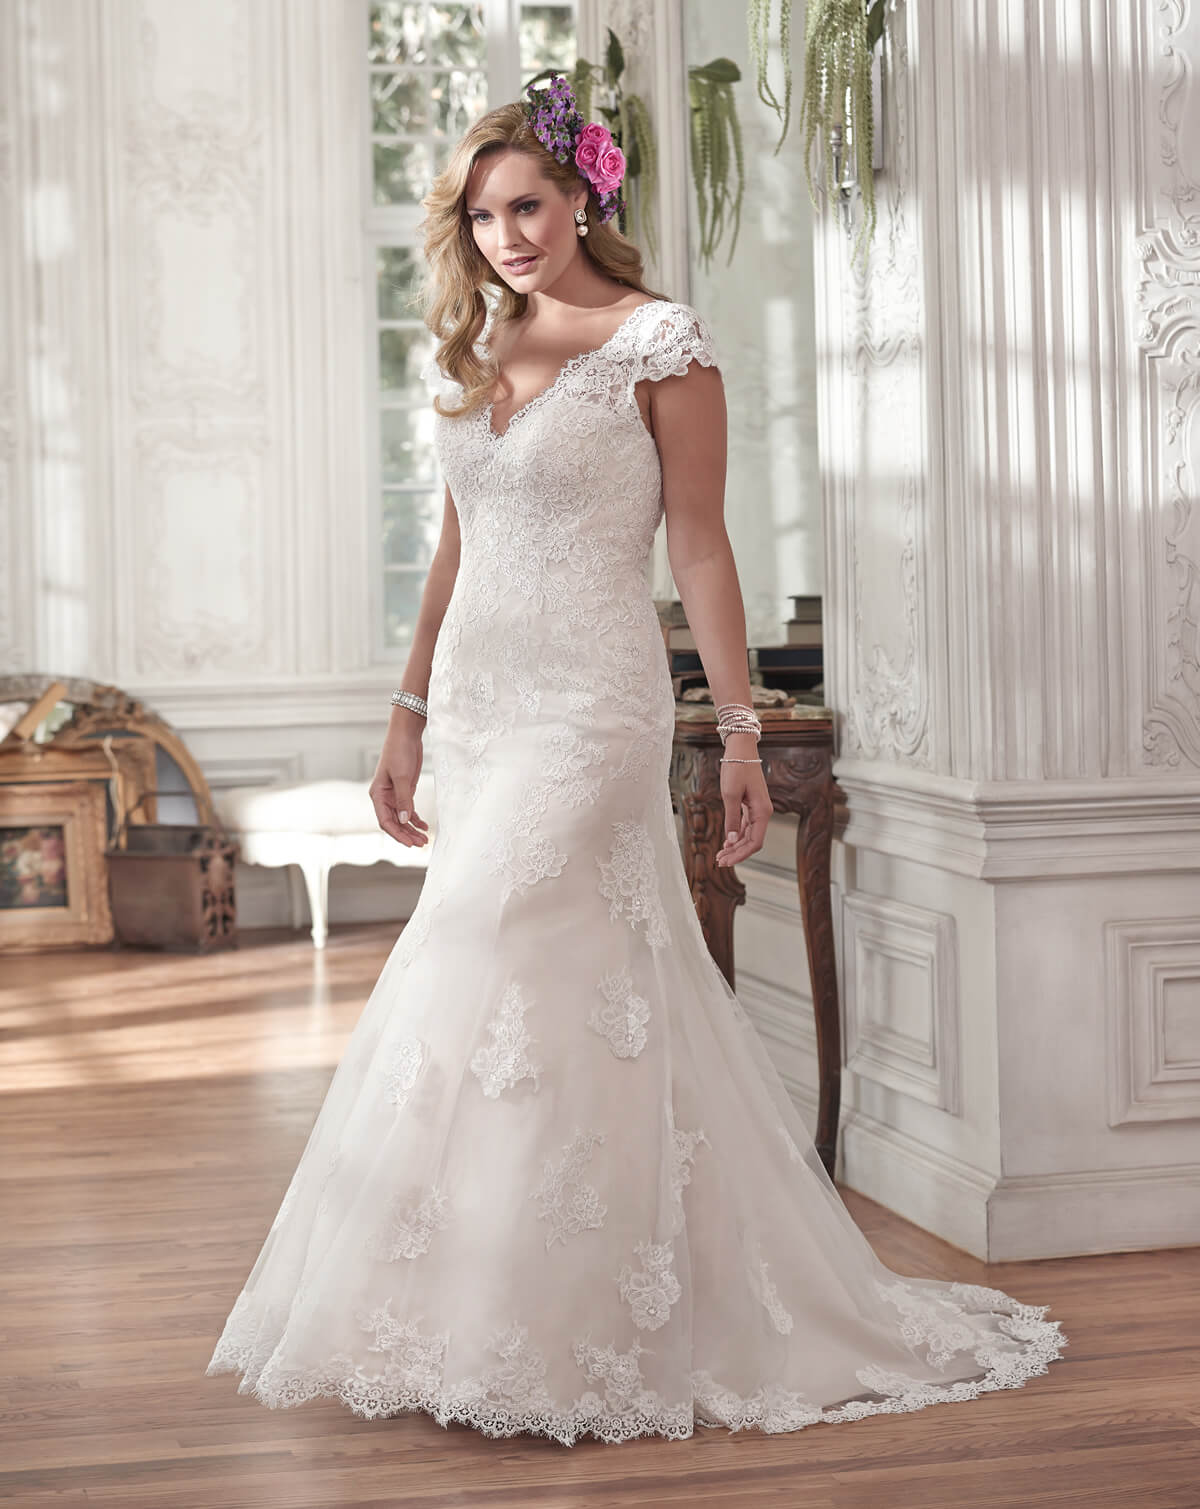 Maggie Sottero - Aracella Collection -Pilar